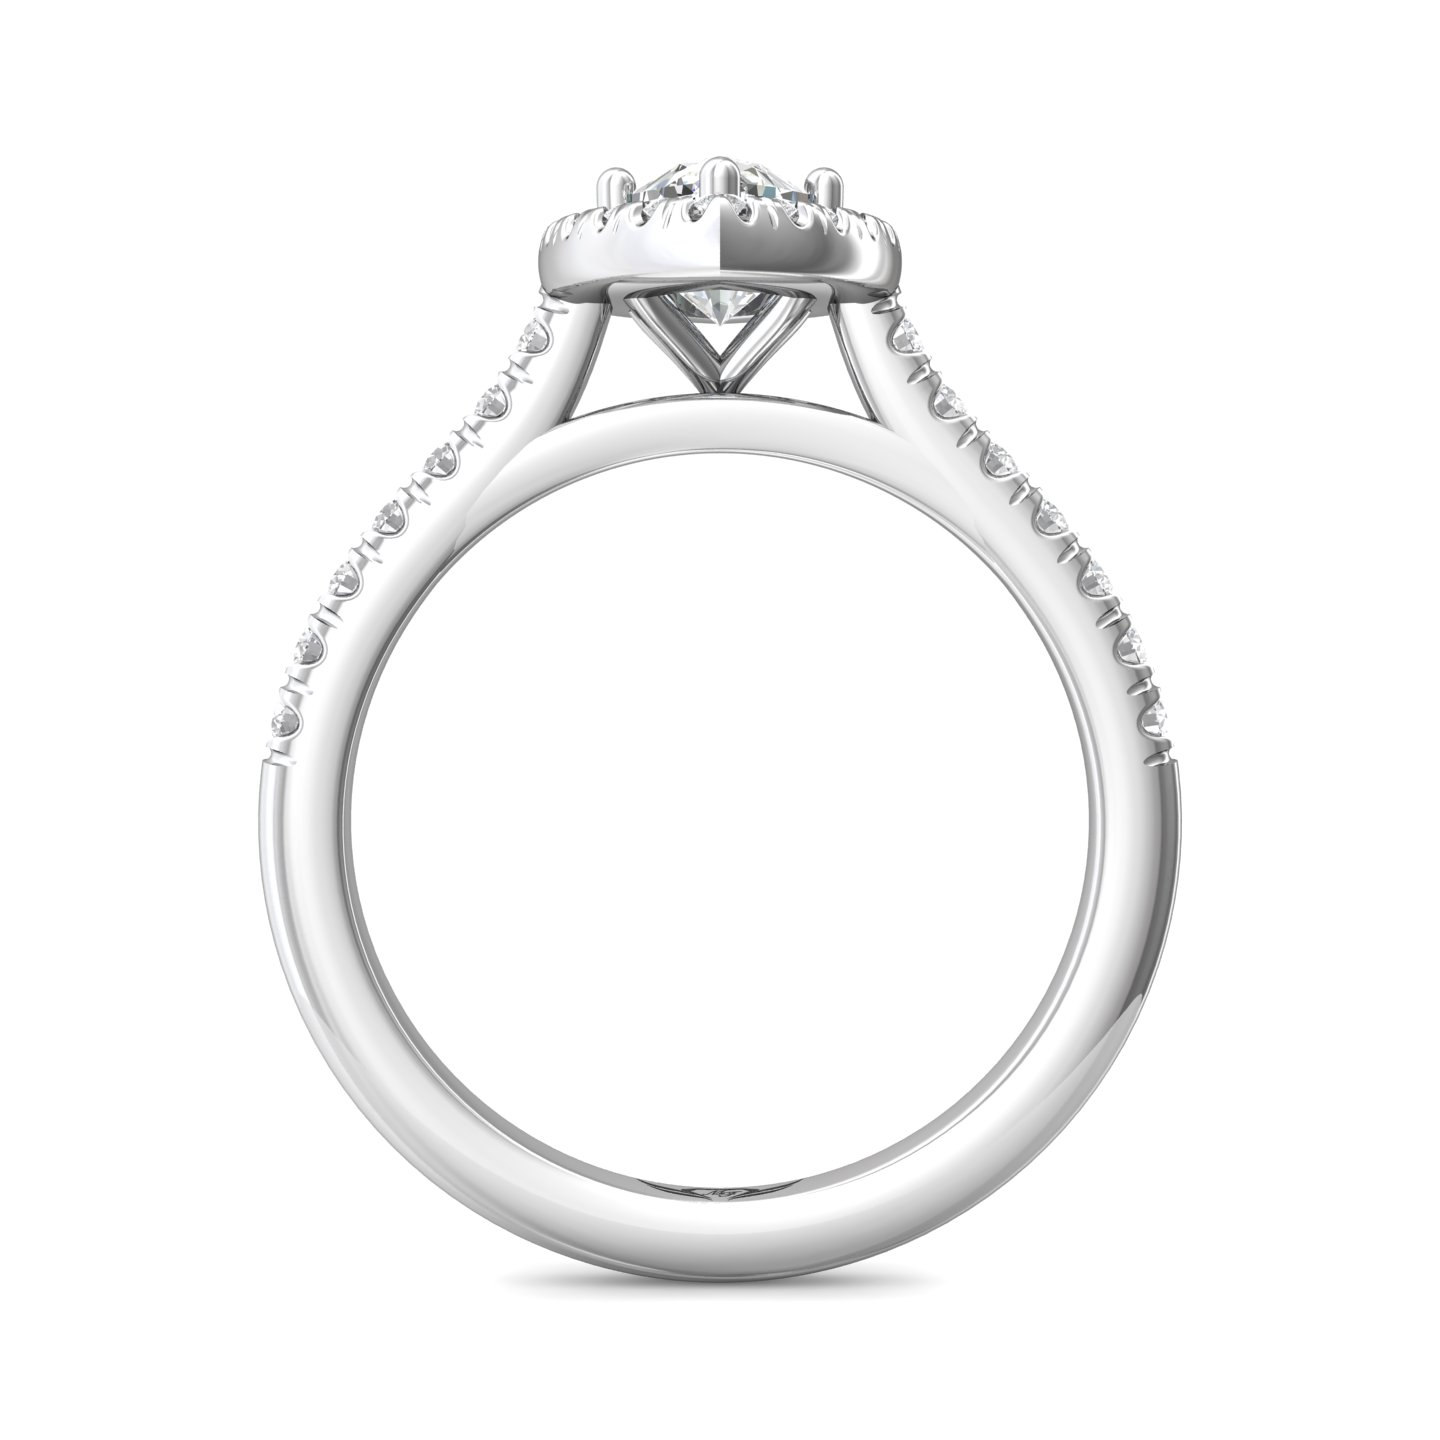 14K White Gold FlyerFit Micropave Halo Engagement Ring Image 2 Grogan Jewelers Florence, AL